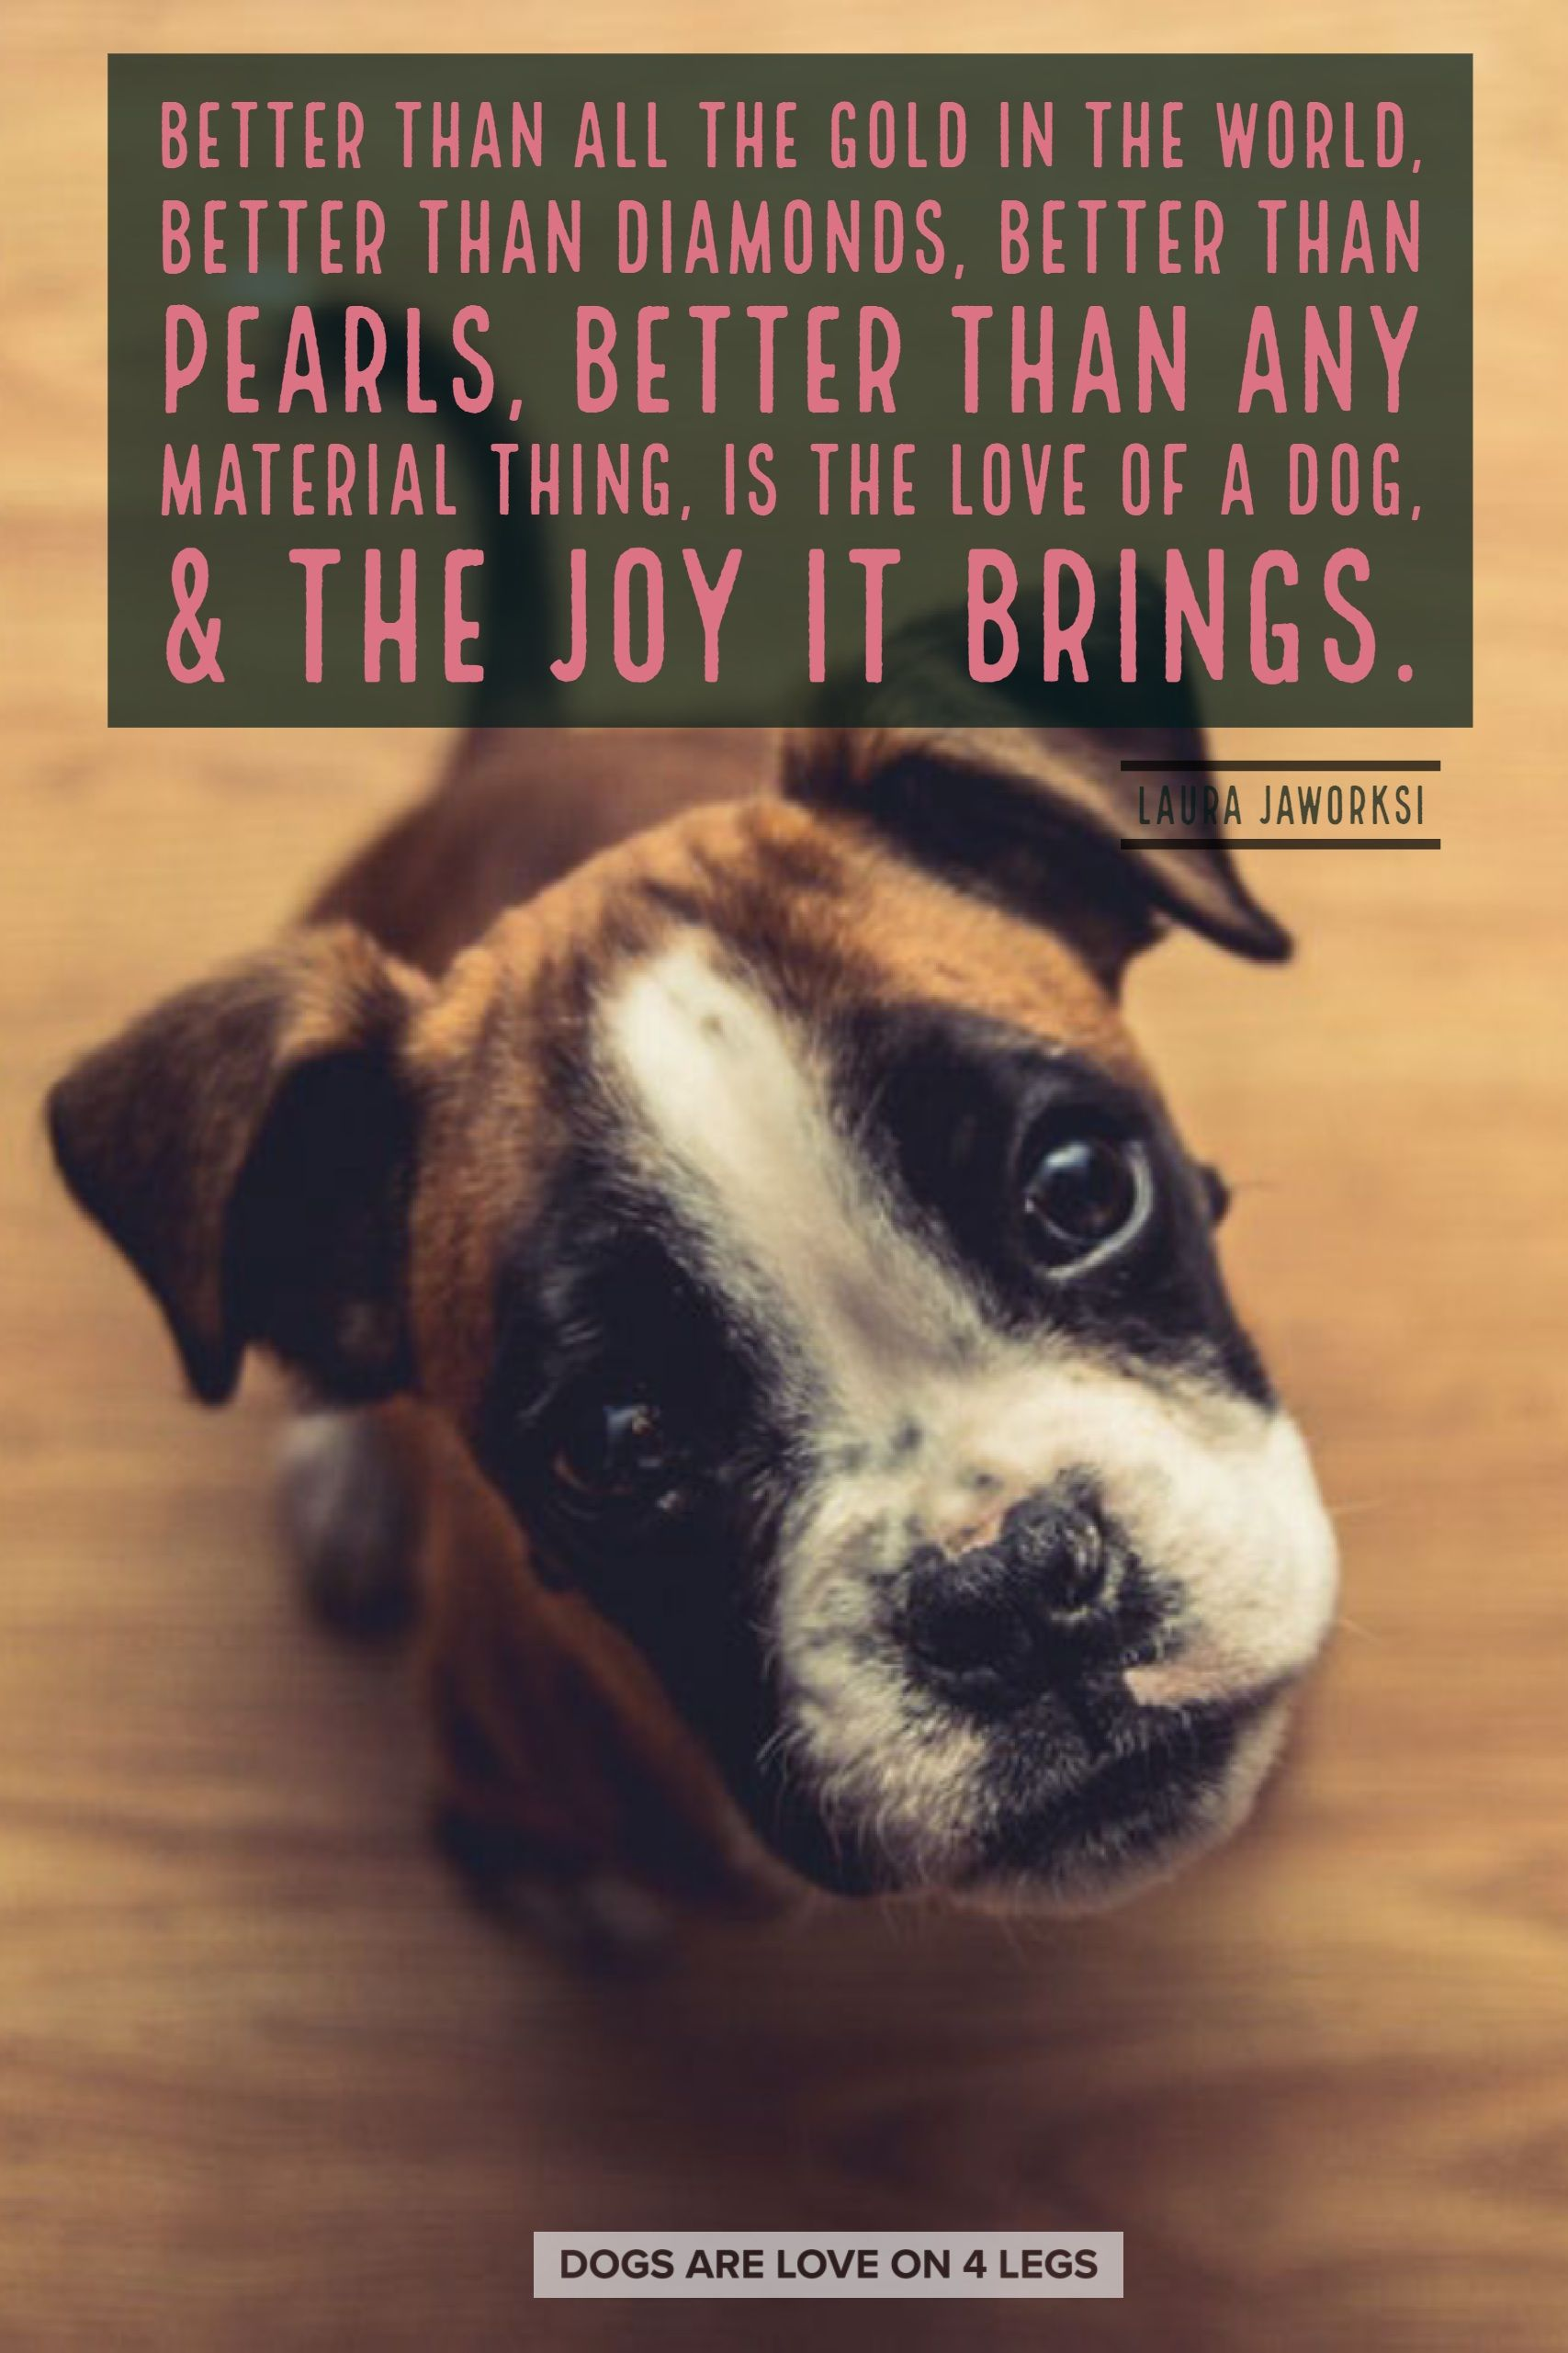 Better Than All The Gold In The World Dog Dog Quotes Inspirational Quotes Funny Quotes Life Quote Dog Quotes Inspirational Dog Quotes Funny Dog Quotes